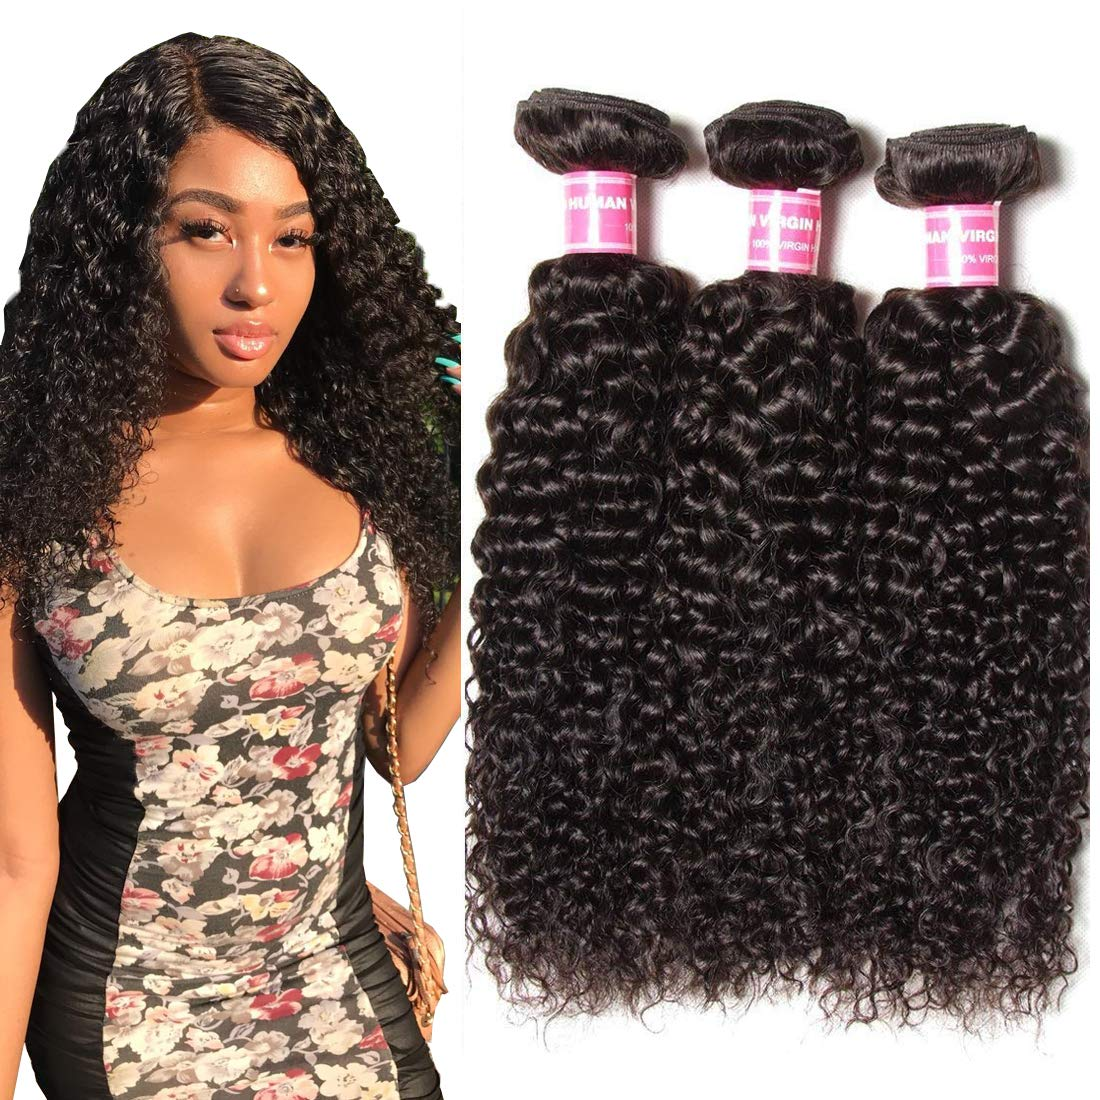 Dinoce Compatible with Longqi Beauty 10A Peruvian Curly Hair 3 Bundles